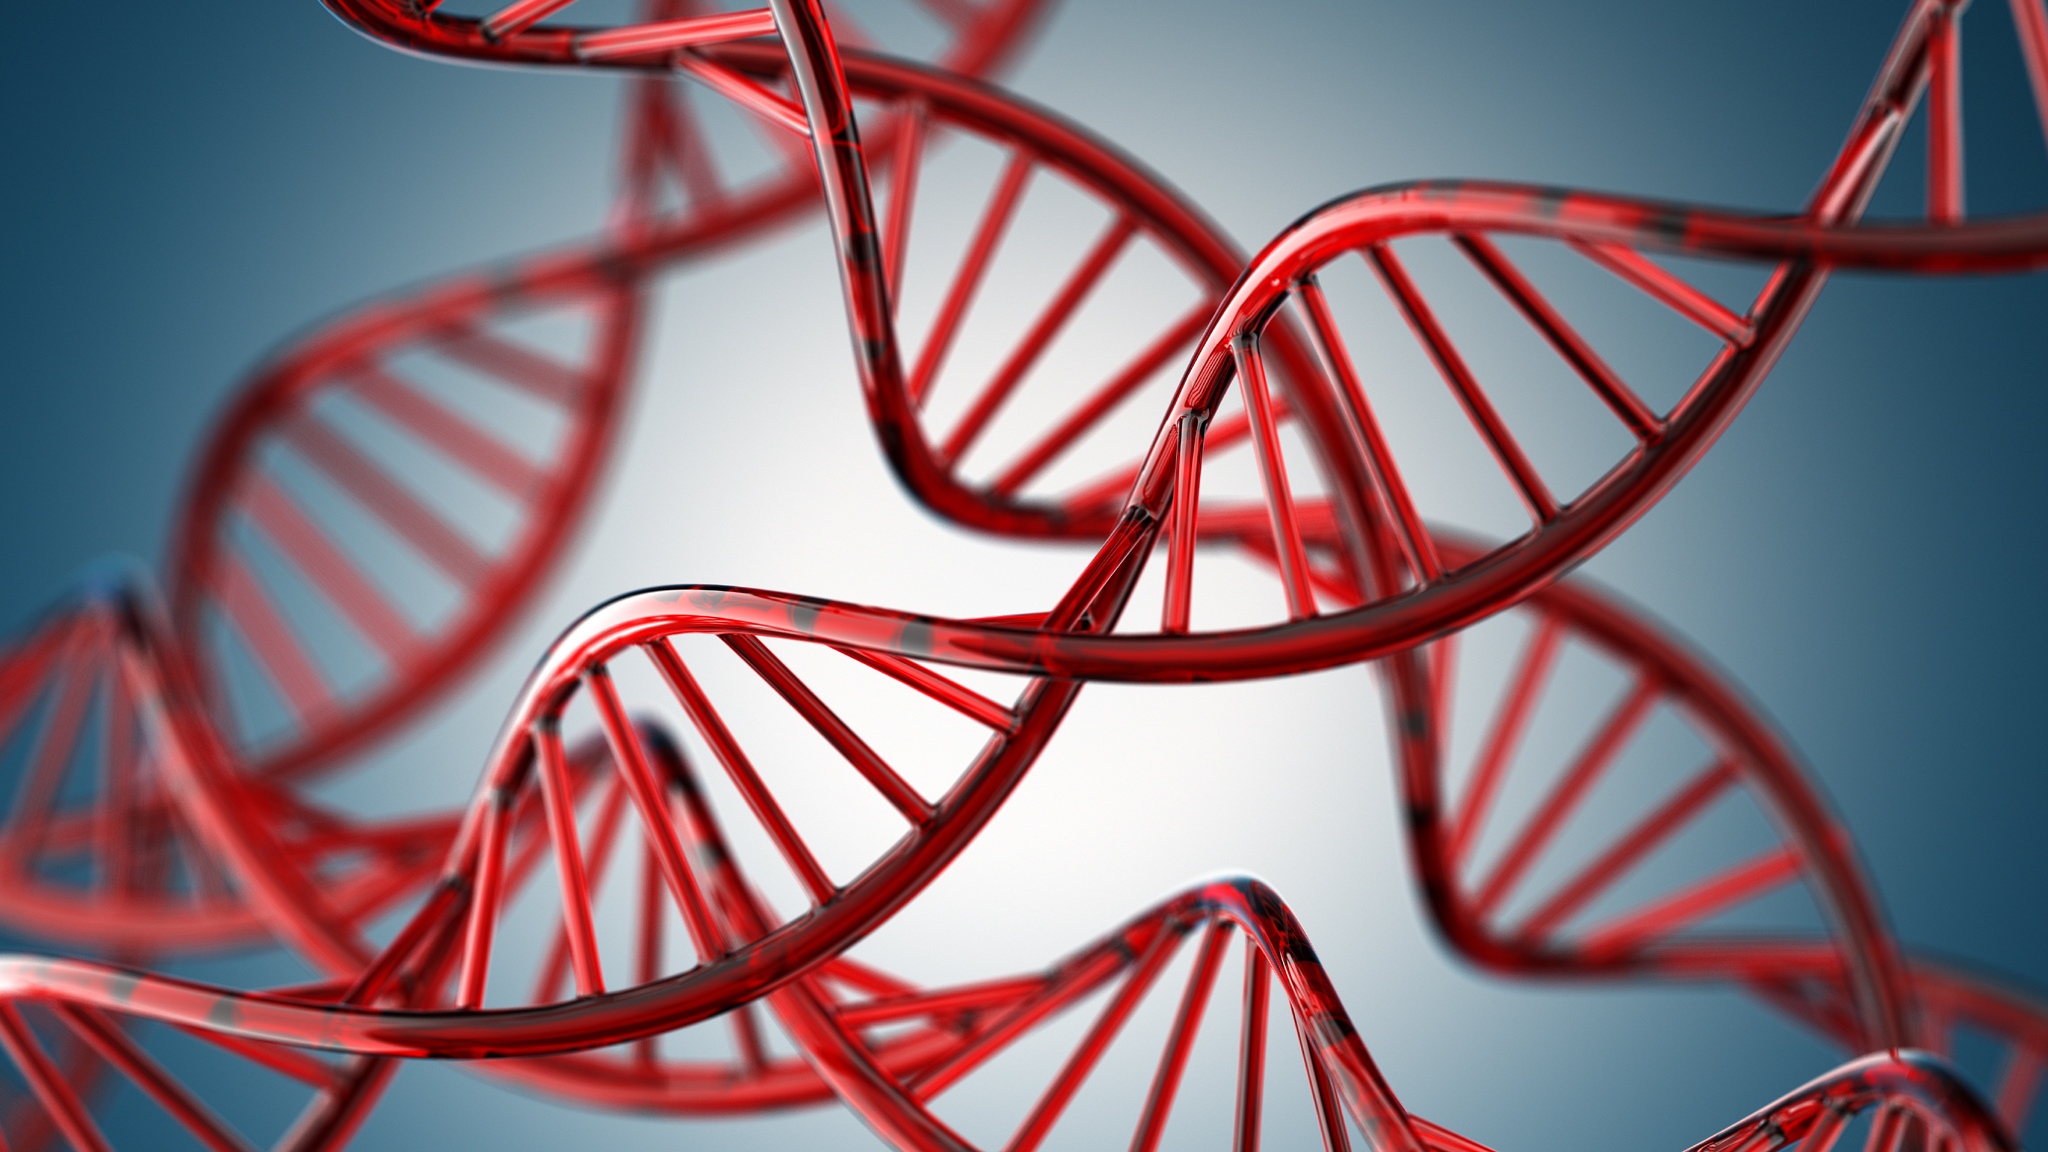 Buy essay online cheap the case for and against genetic engineering